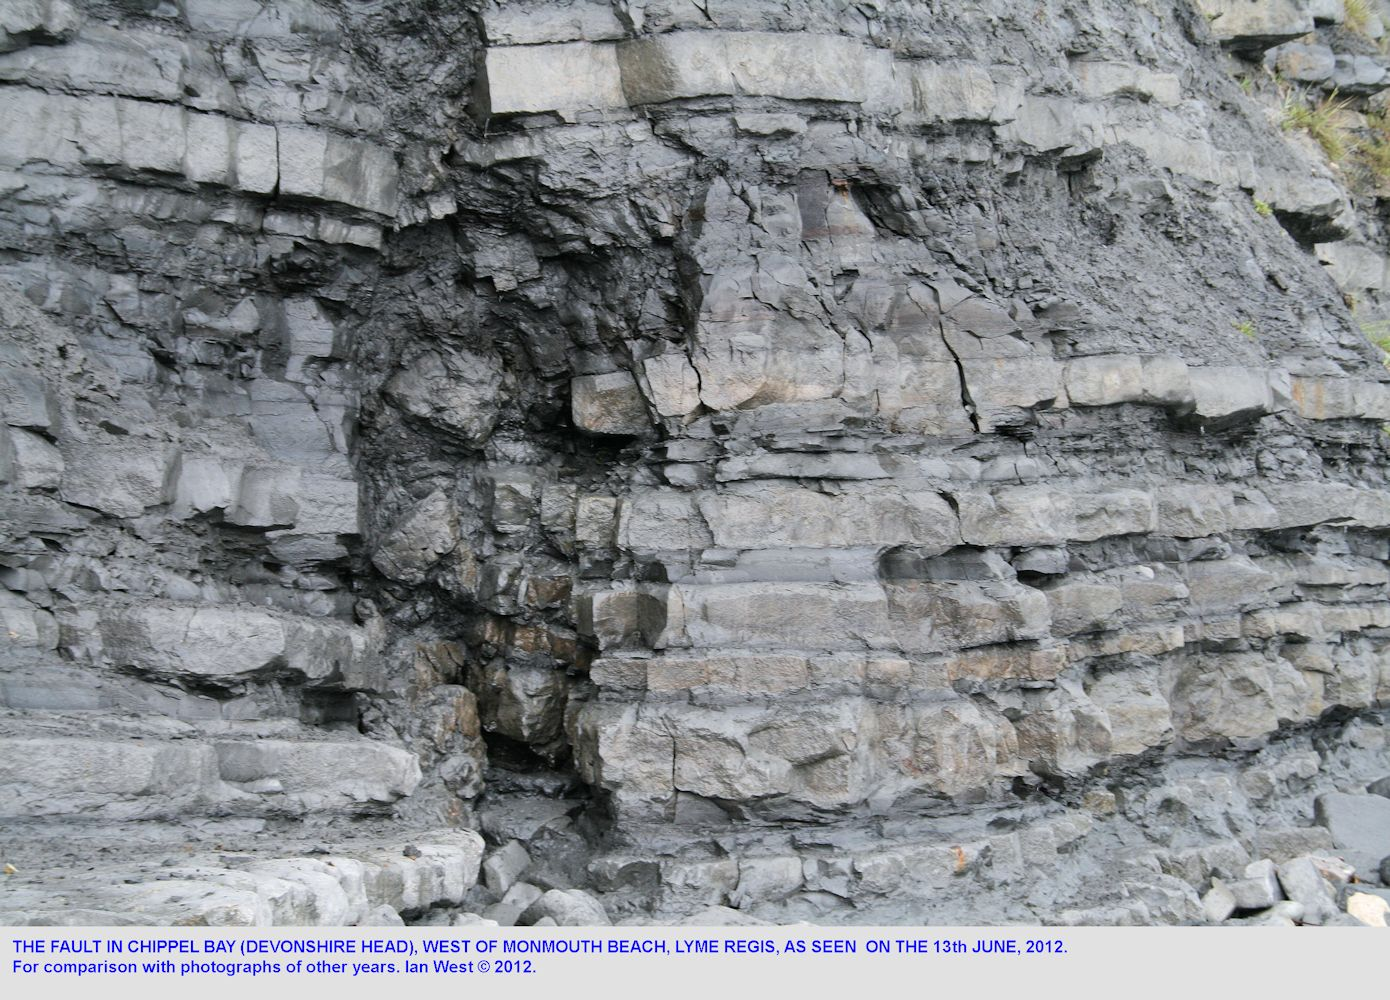 The fault near the eastern end of Ware Cliffs, Devonshire Head, west of Lyme Regis, Dorset, as seen on 13th June 2012